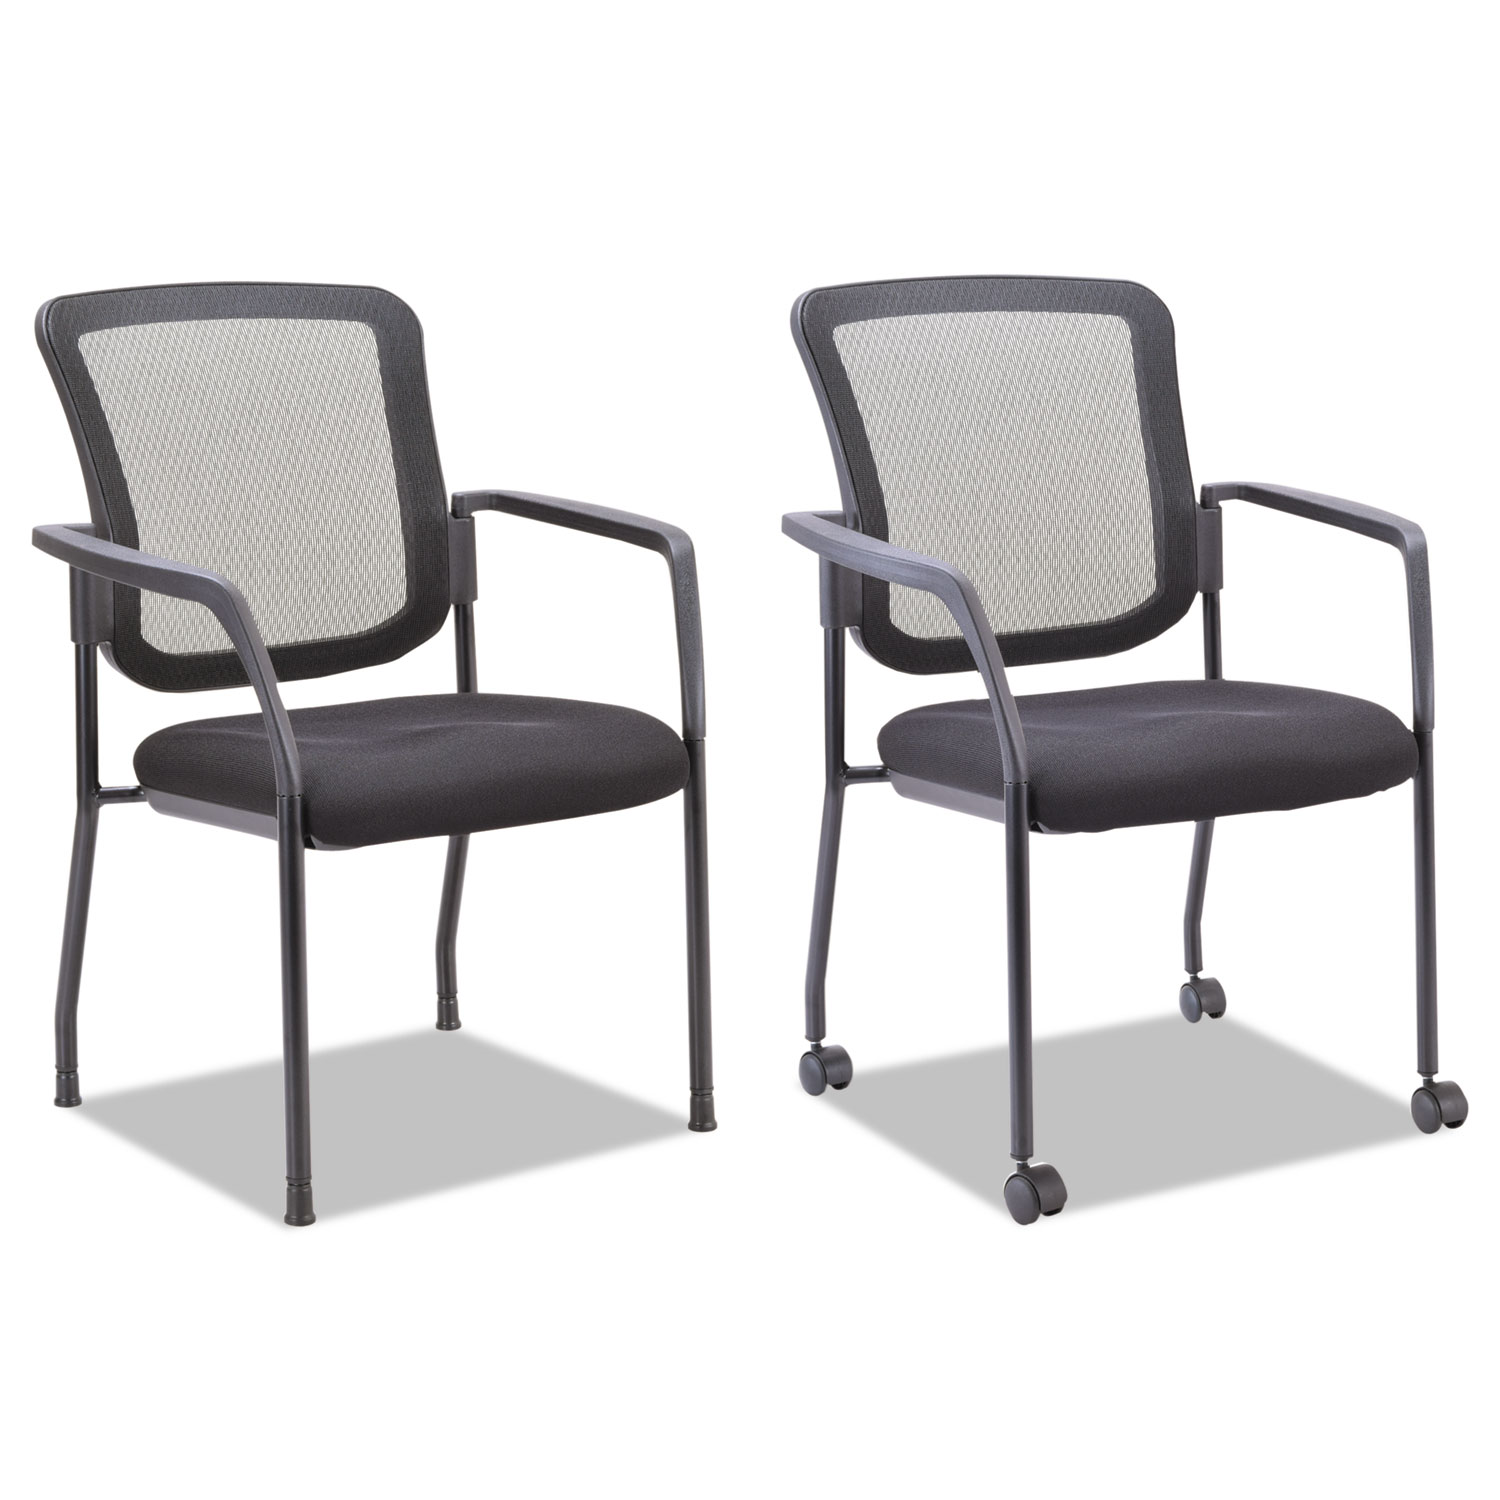 Mesh Guest Stacking Chair by Alera ALEEL4314 TimeSupplies